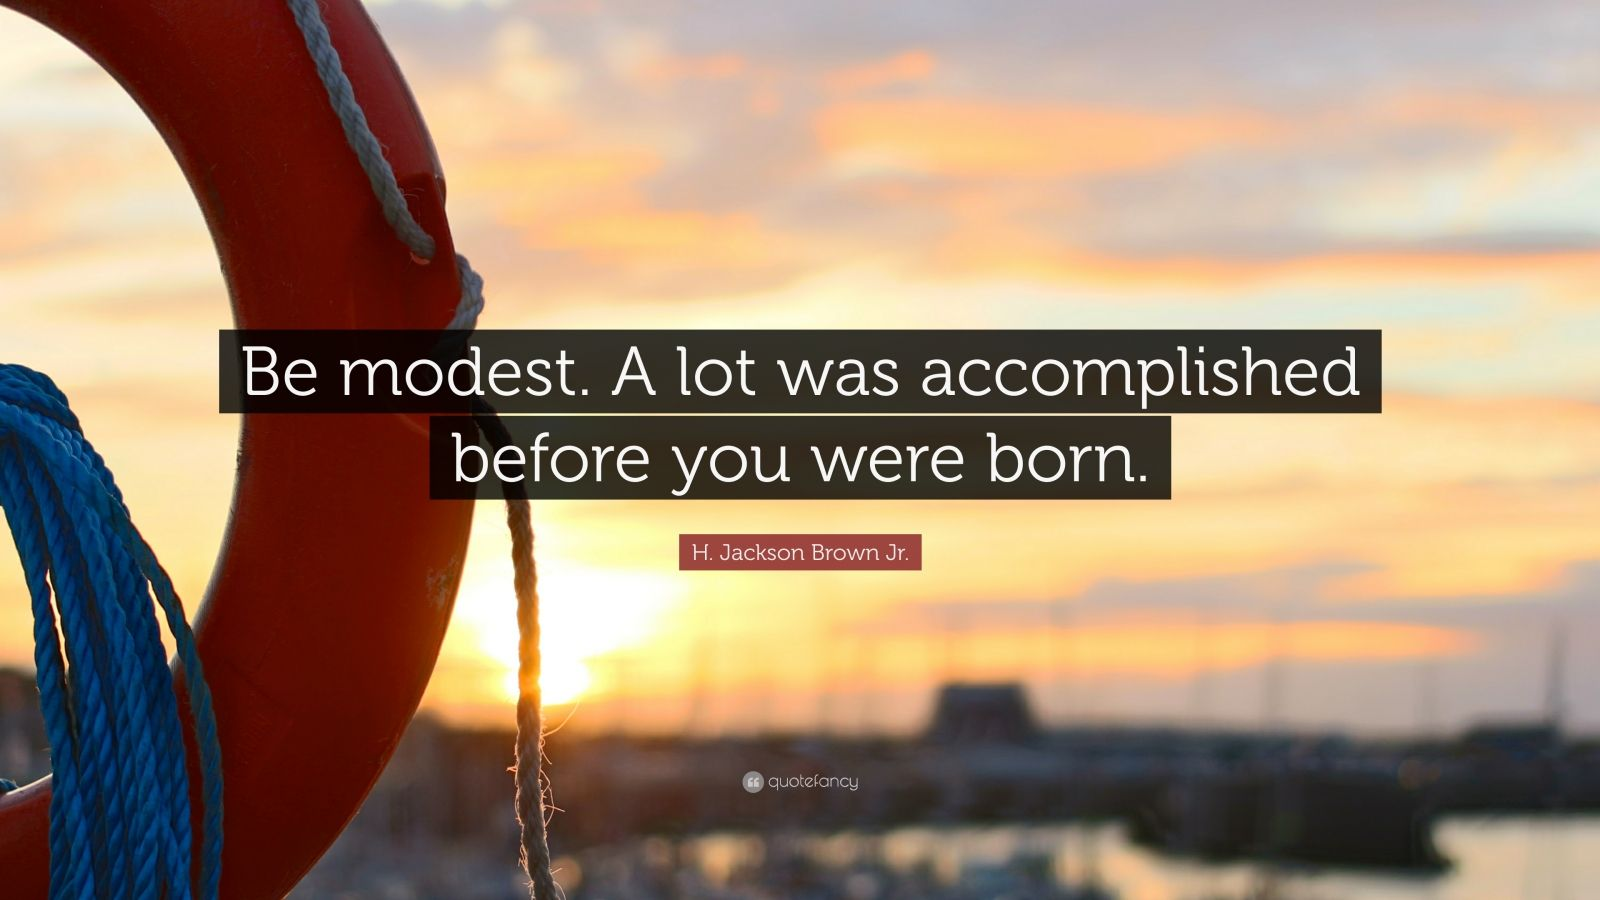 """H. Jackson Brown Jr. Quote: """"Be modest. A lot was accomplished before you were born."""""""